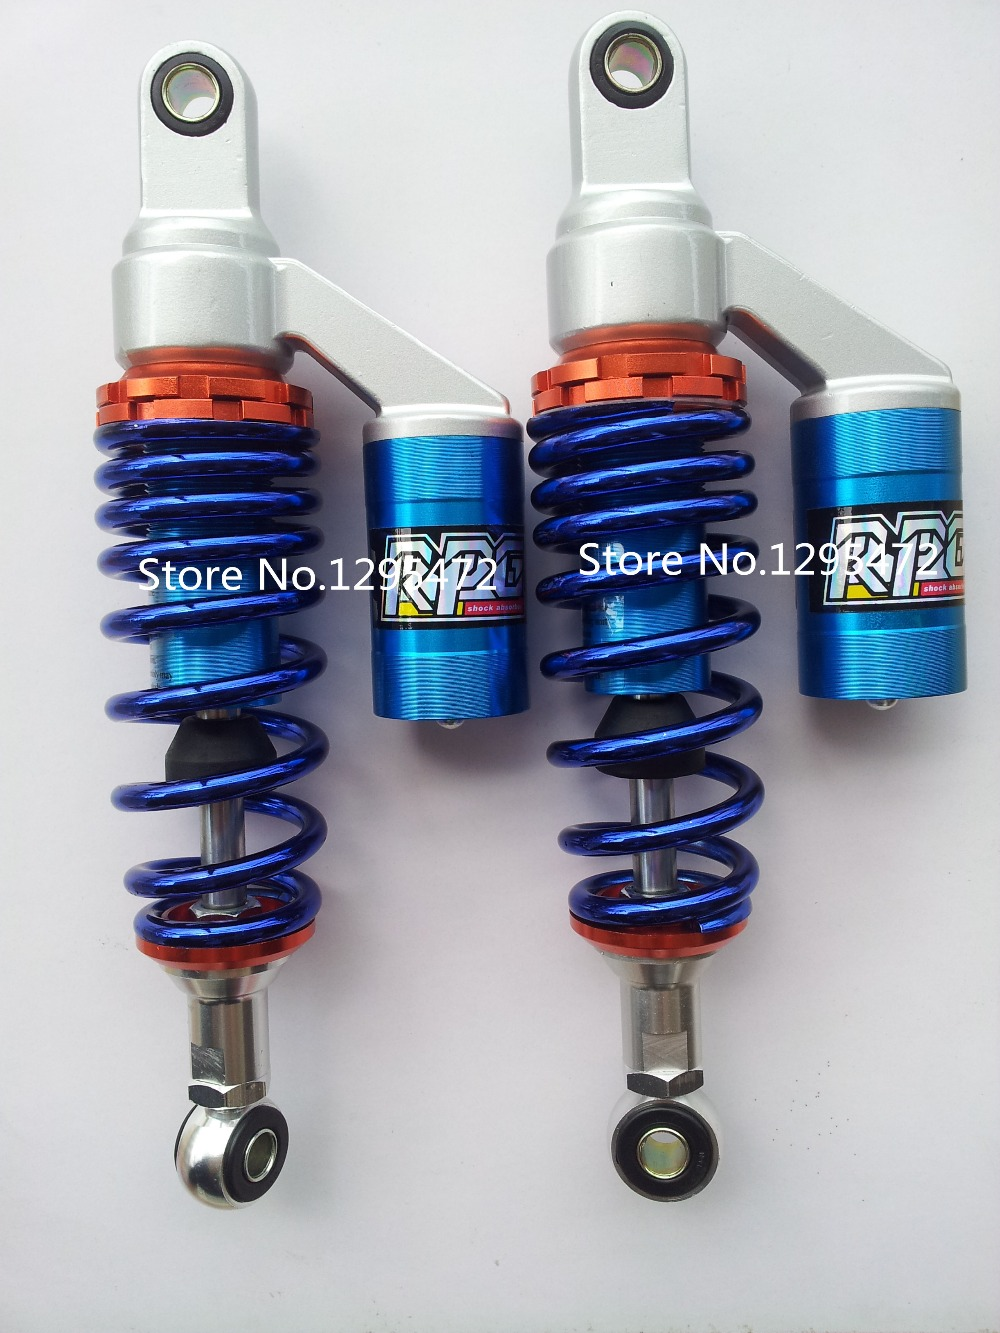 300mm   7.5mm spring  motorcycle    shock absorber  assy  for   motorbike  DIRT BIKE  ATV QUAD   colour blue motorbike crankshaft for xinyuan xy 150cc engine atv dirt bike motorcycle qz 118